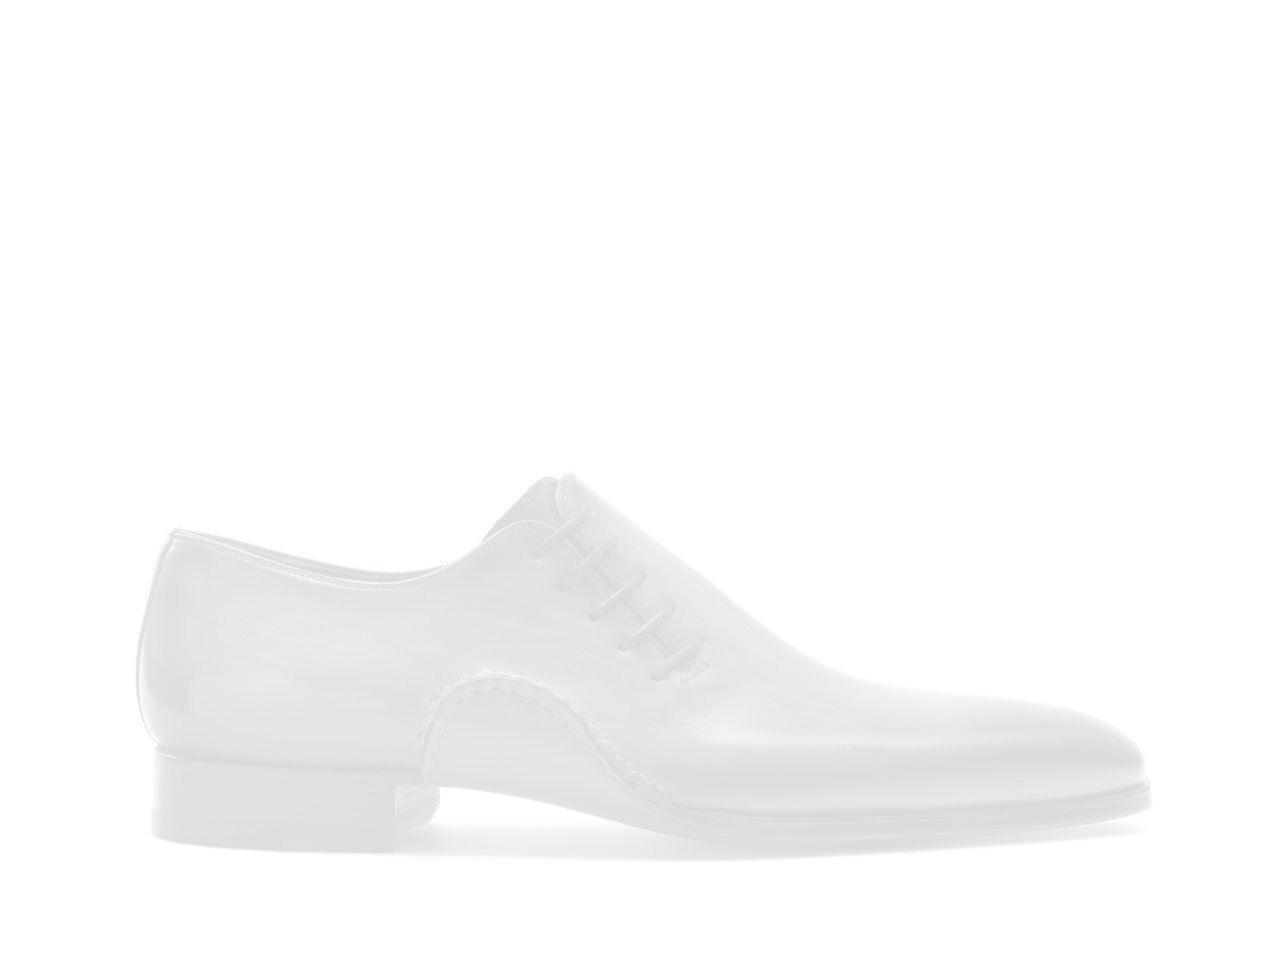 Sole of the Magnanni Ibiza Grey Men's Sneakers